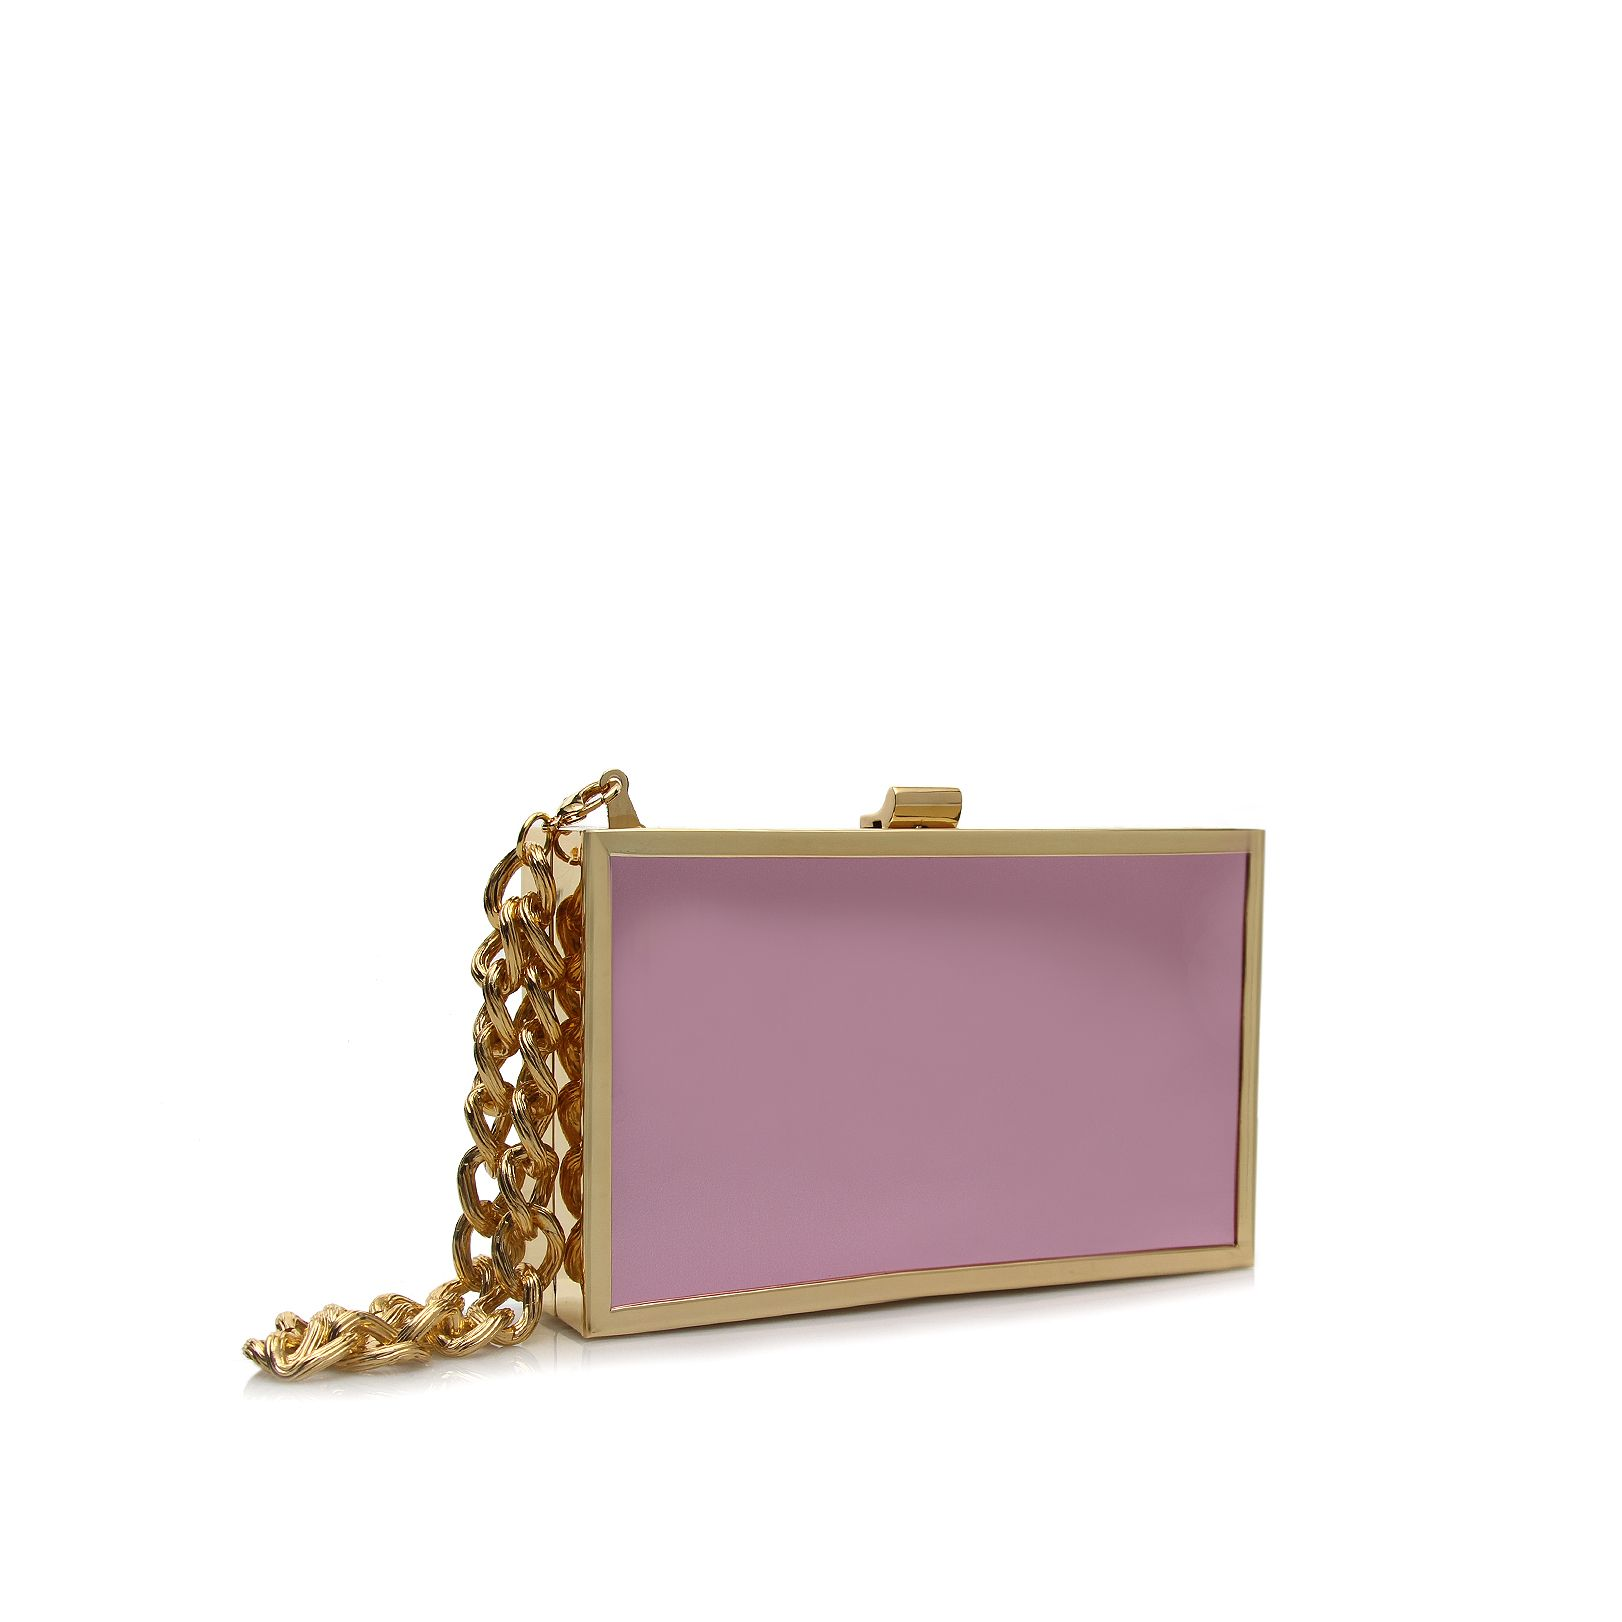 Bathe chain clutch bag